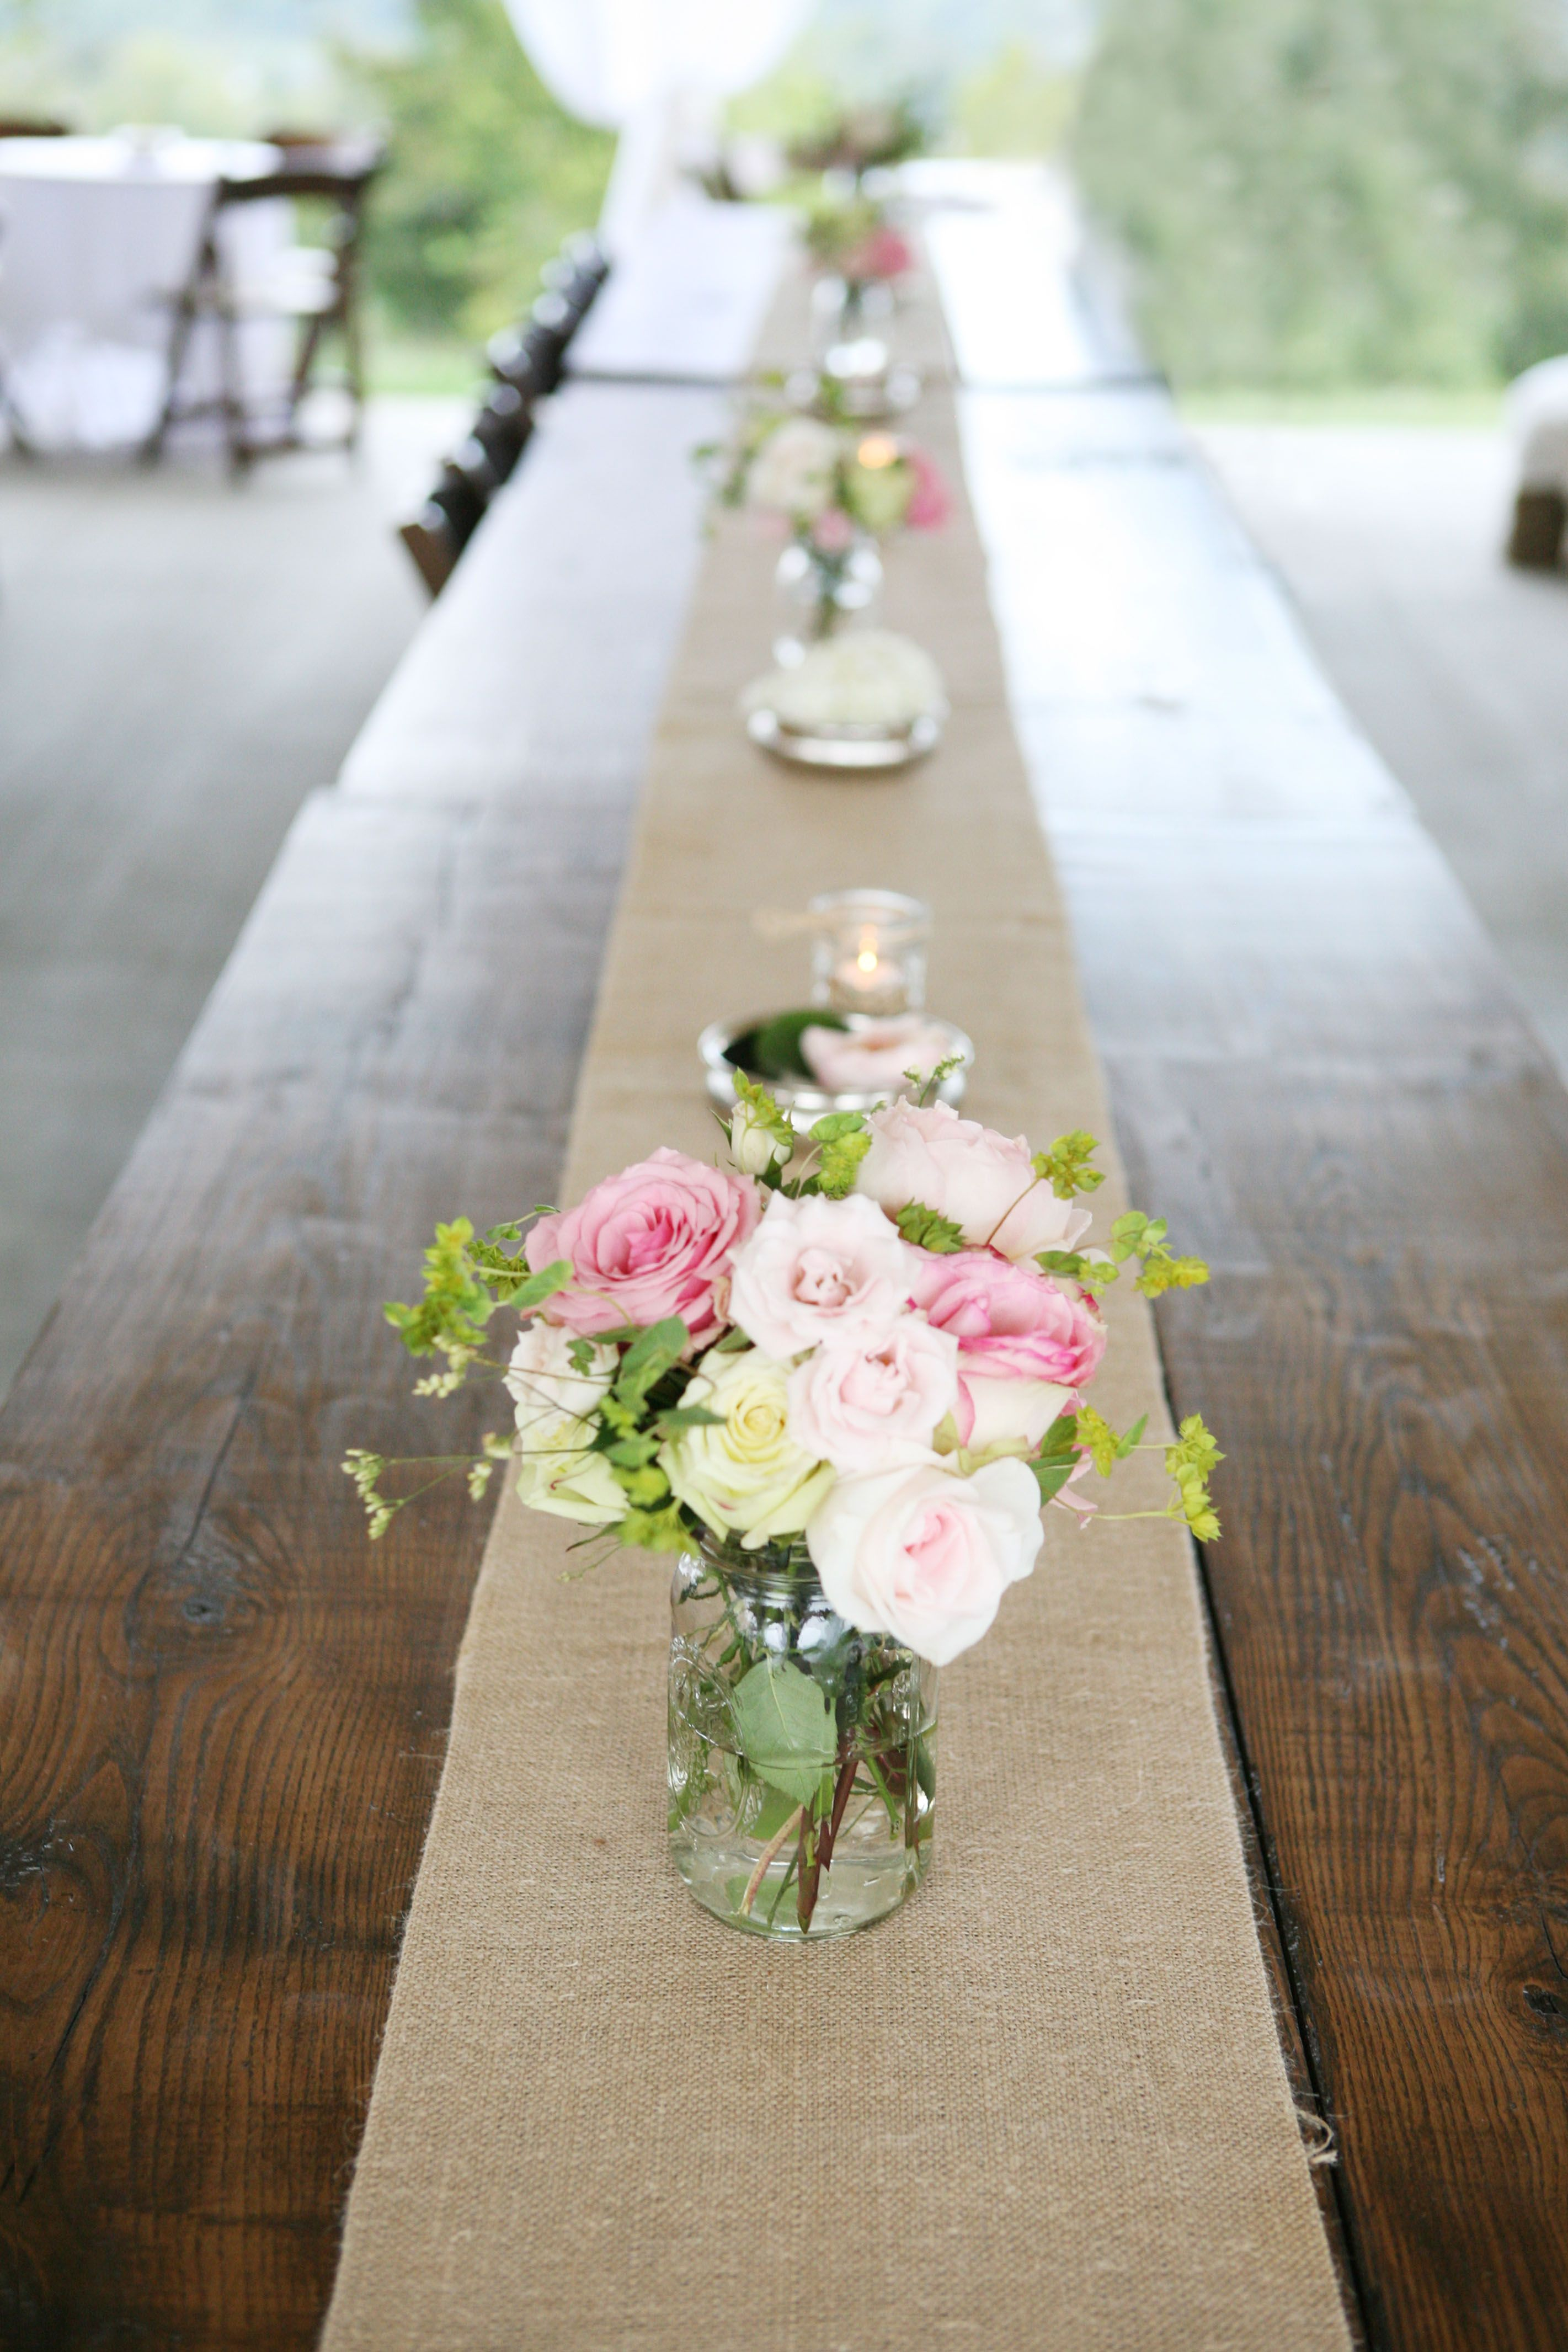 Love the rustic detail of including a burlap runner